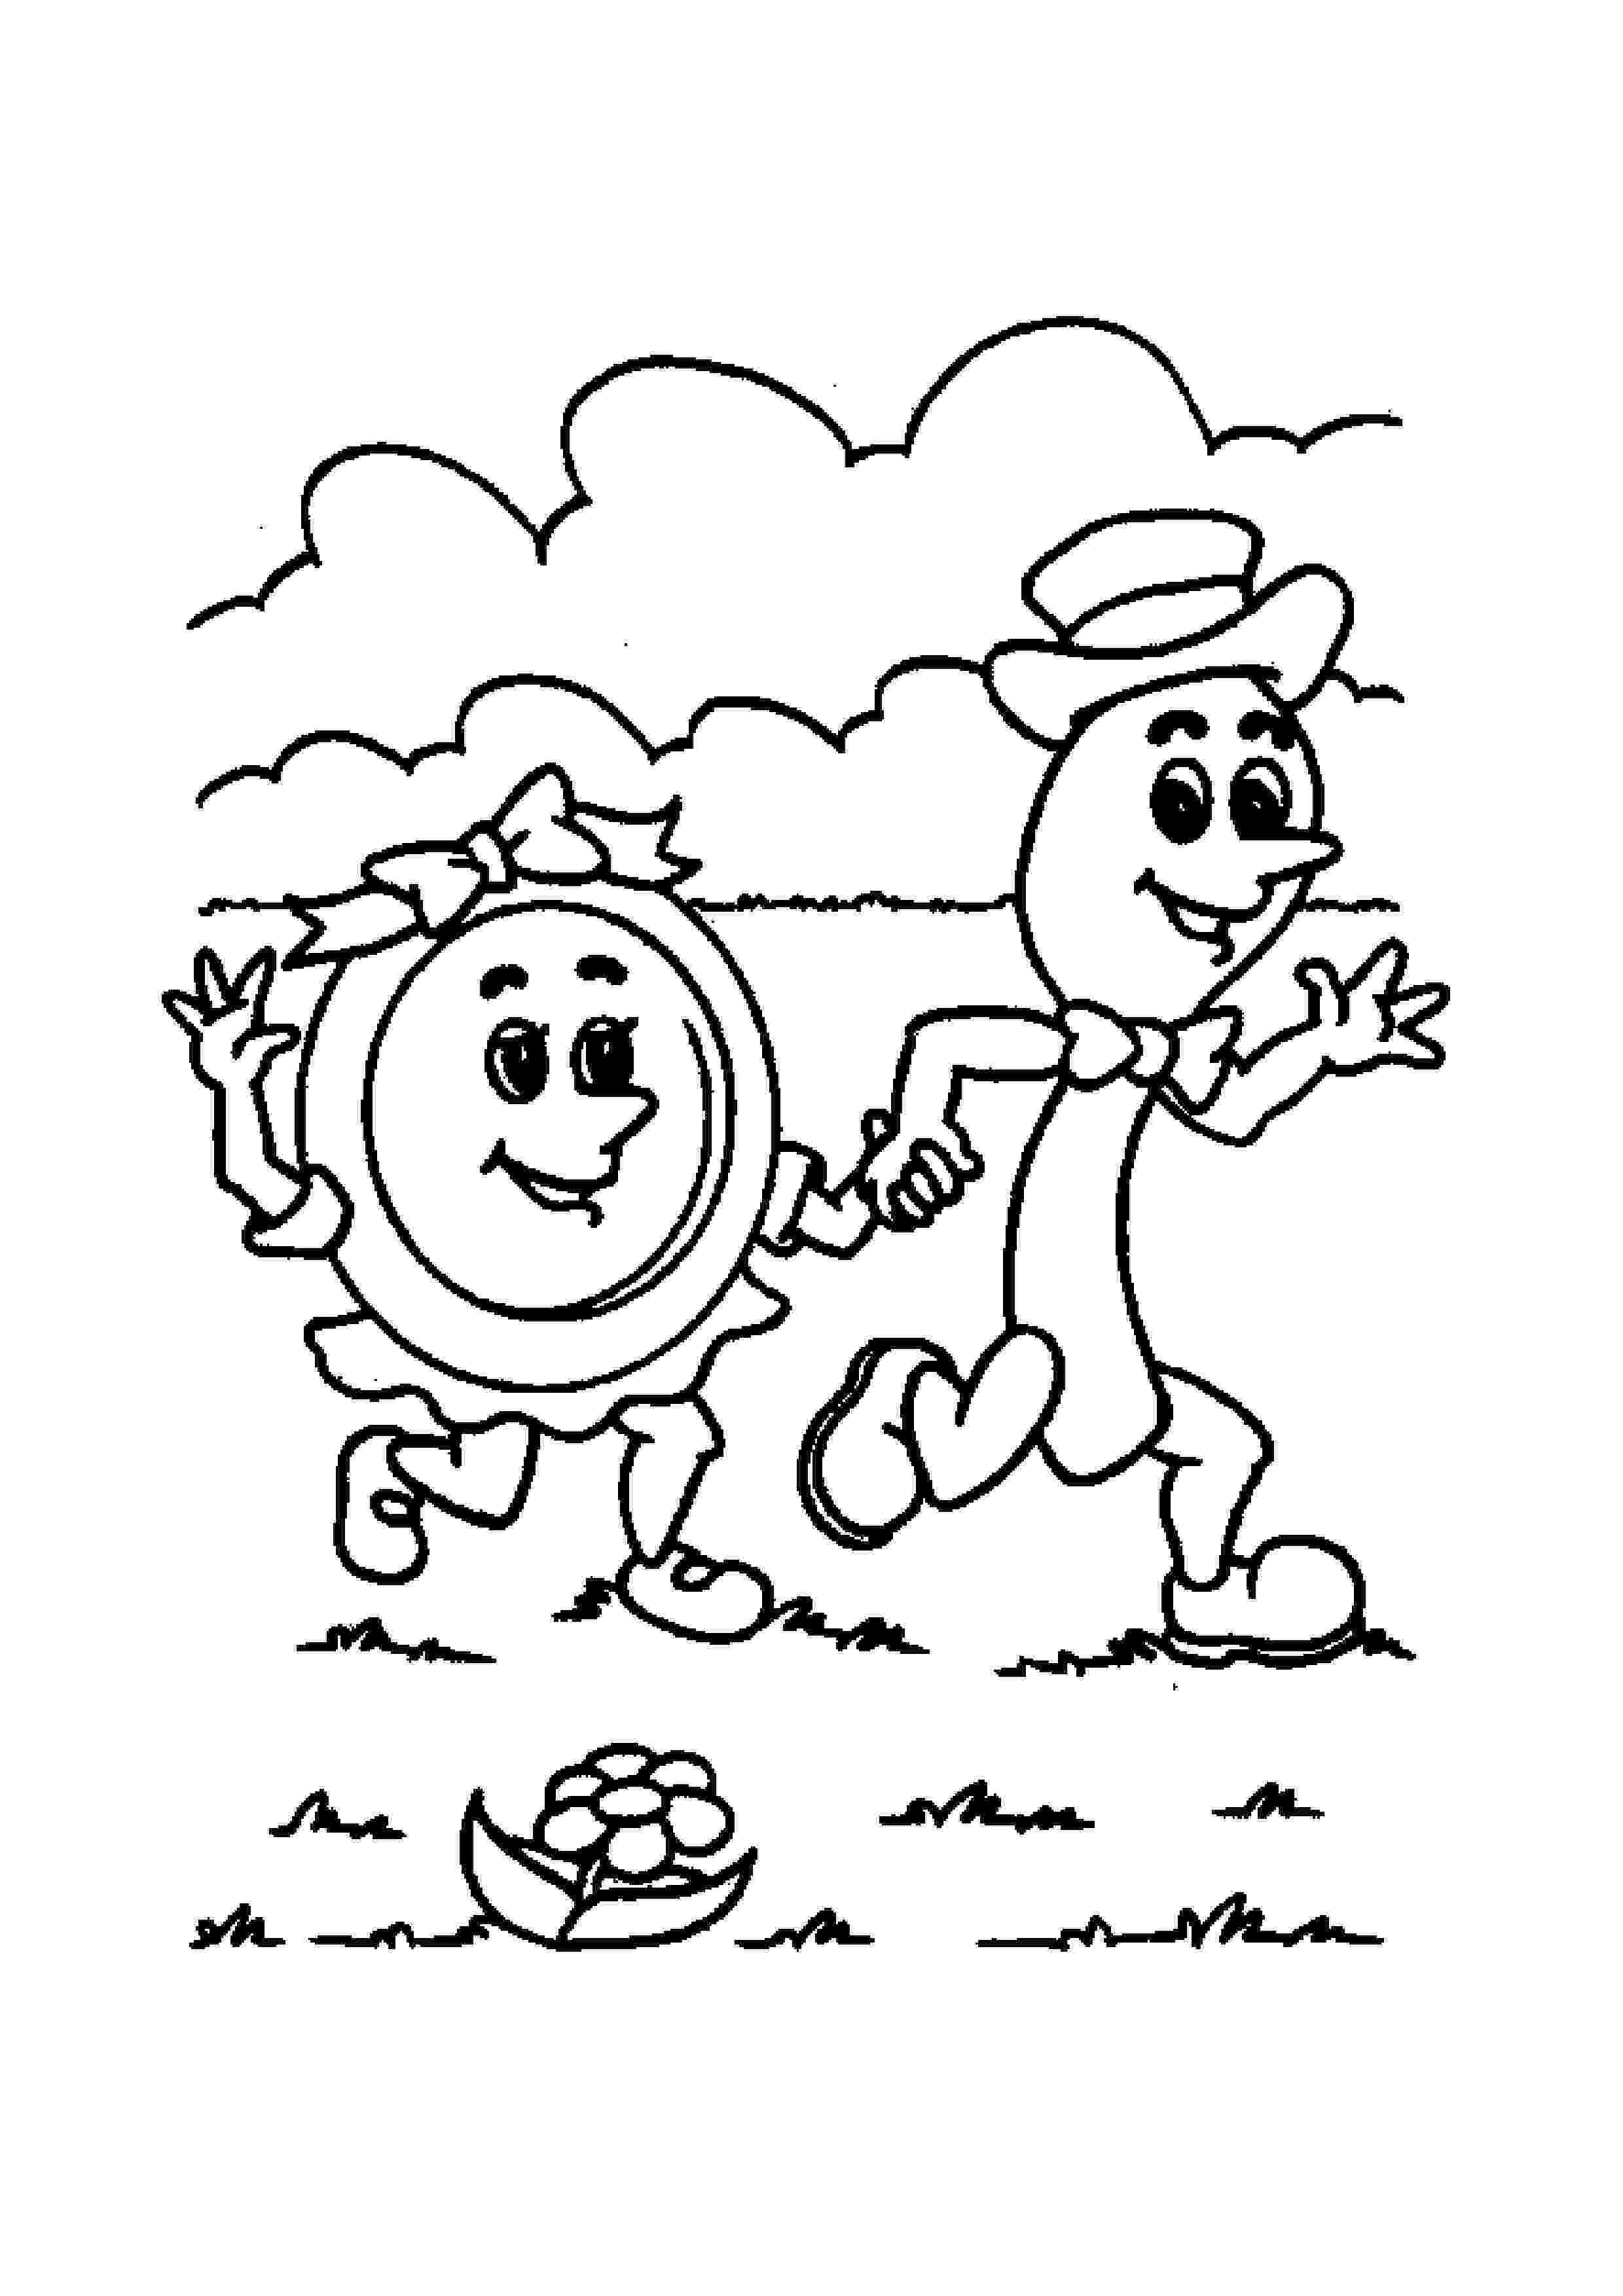 colouring pages for nursery rhymes nursery rhymes coloring pages printable free download nursery for pages colouring rhymes